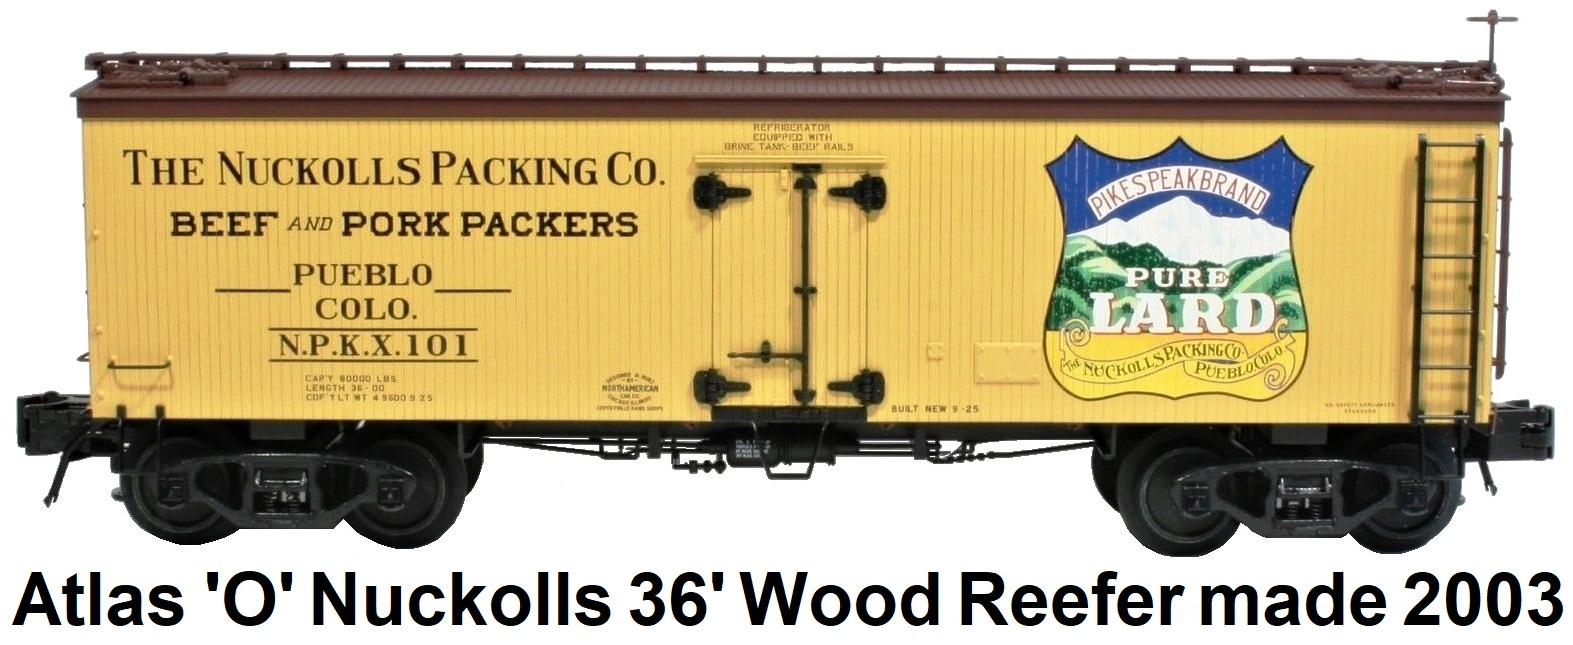 Atlas 'O' scale Nuckoll's Packing Co. Pike's Peak Brand 36' Wood Side Reefer #8010 for 3-rail circa 2003